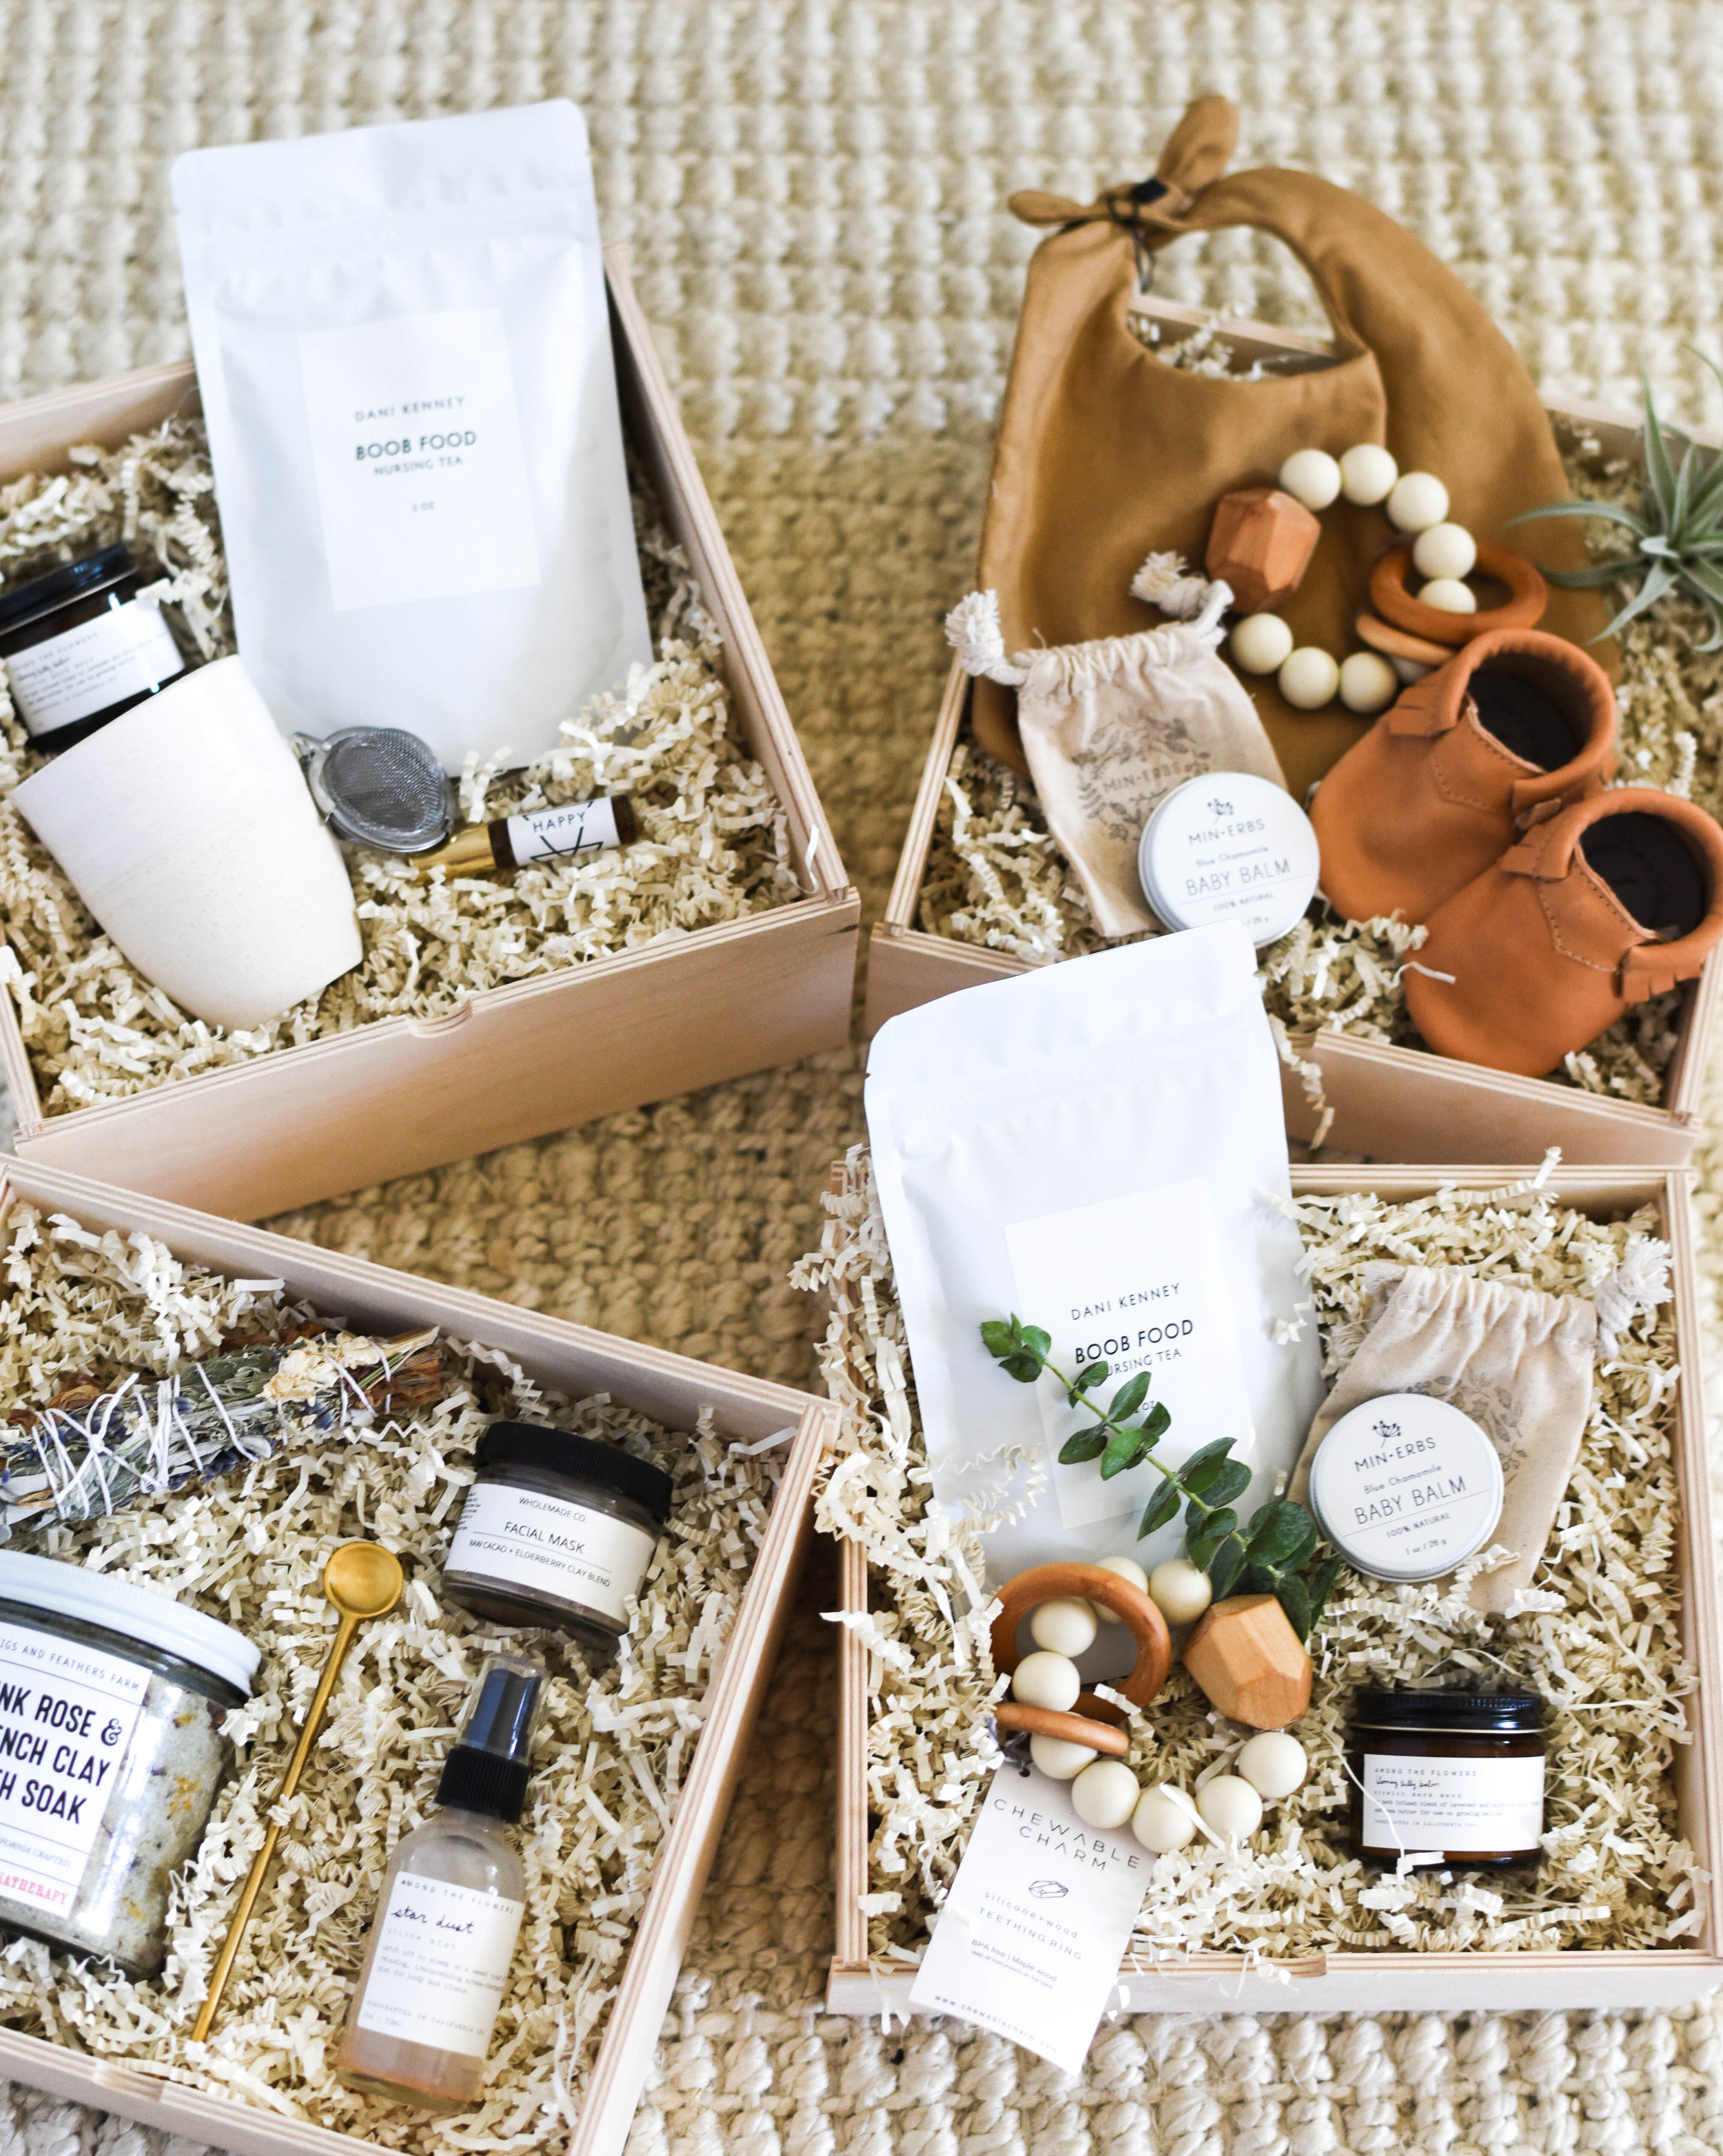 the heart - Gifts are meant to invoke joy and well-being, and we rally behind those who use their own gifts to bless others. These boxes promote creative expression. intentionality and community. To pay it even more forward, a portion from all sales go to City of Refuge in Sacramento.On May 6th, 2017, we launched a Kickstarter campaign that was fully funded by 138 generous backers, to whom we are forever grateful!Above all, this project was meant to honor the life of our daughter Norah. Her fifteen minutes in this world had an incredible impact on our lives. Remembering her life, and death, as well as the invaluable gifts that we received from our creative community that brought so much healing, is the motivation to make this business a success. We hope in turn that it blesses others as much as it's blessed our family.- Psalm 30:11 -Watch the video for an inside look at our Kickstarter campaign!